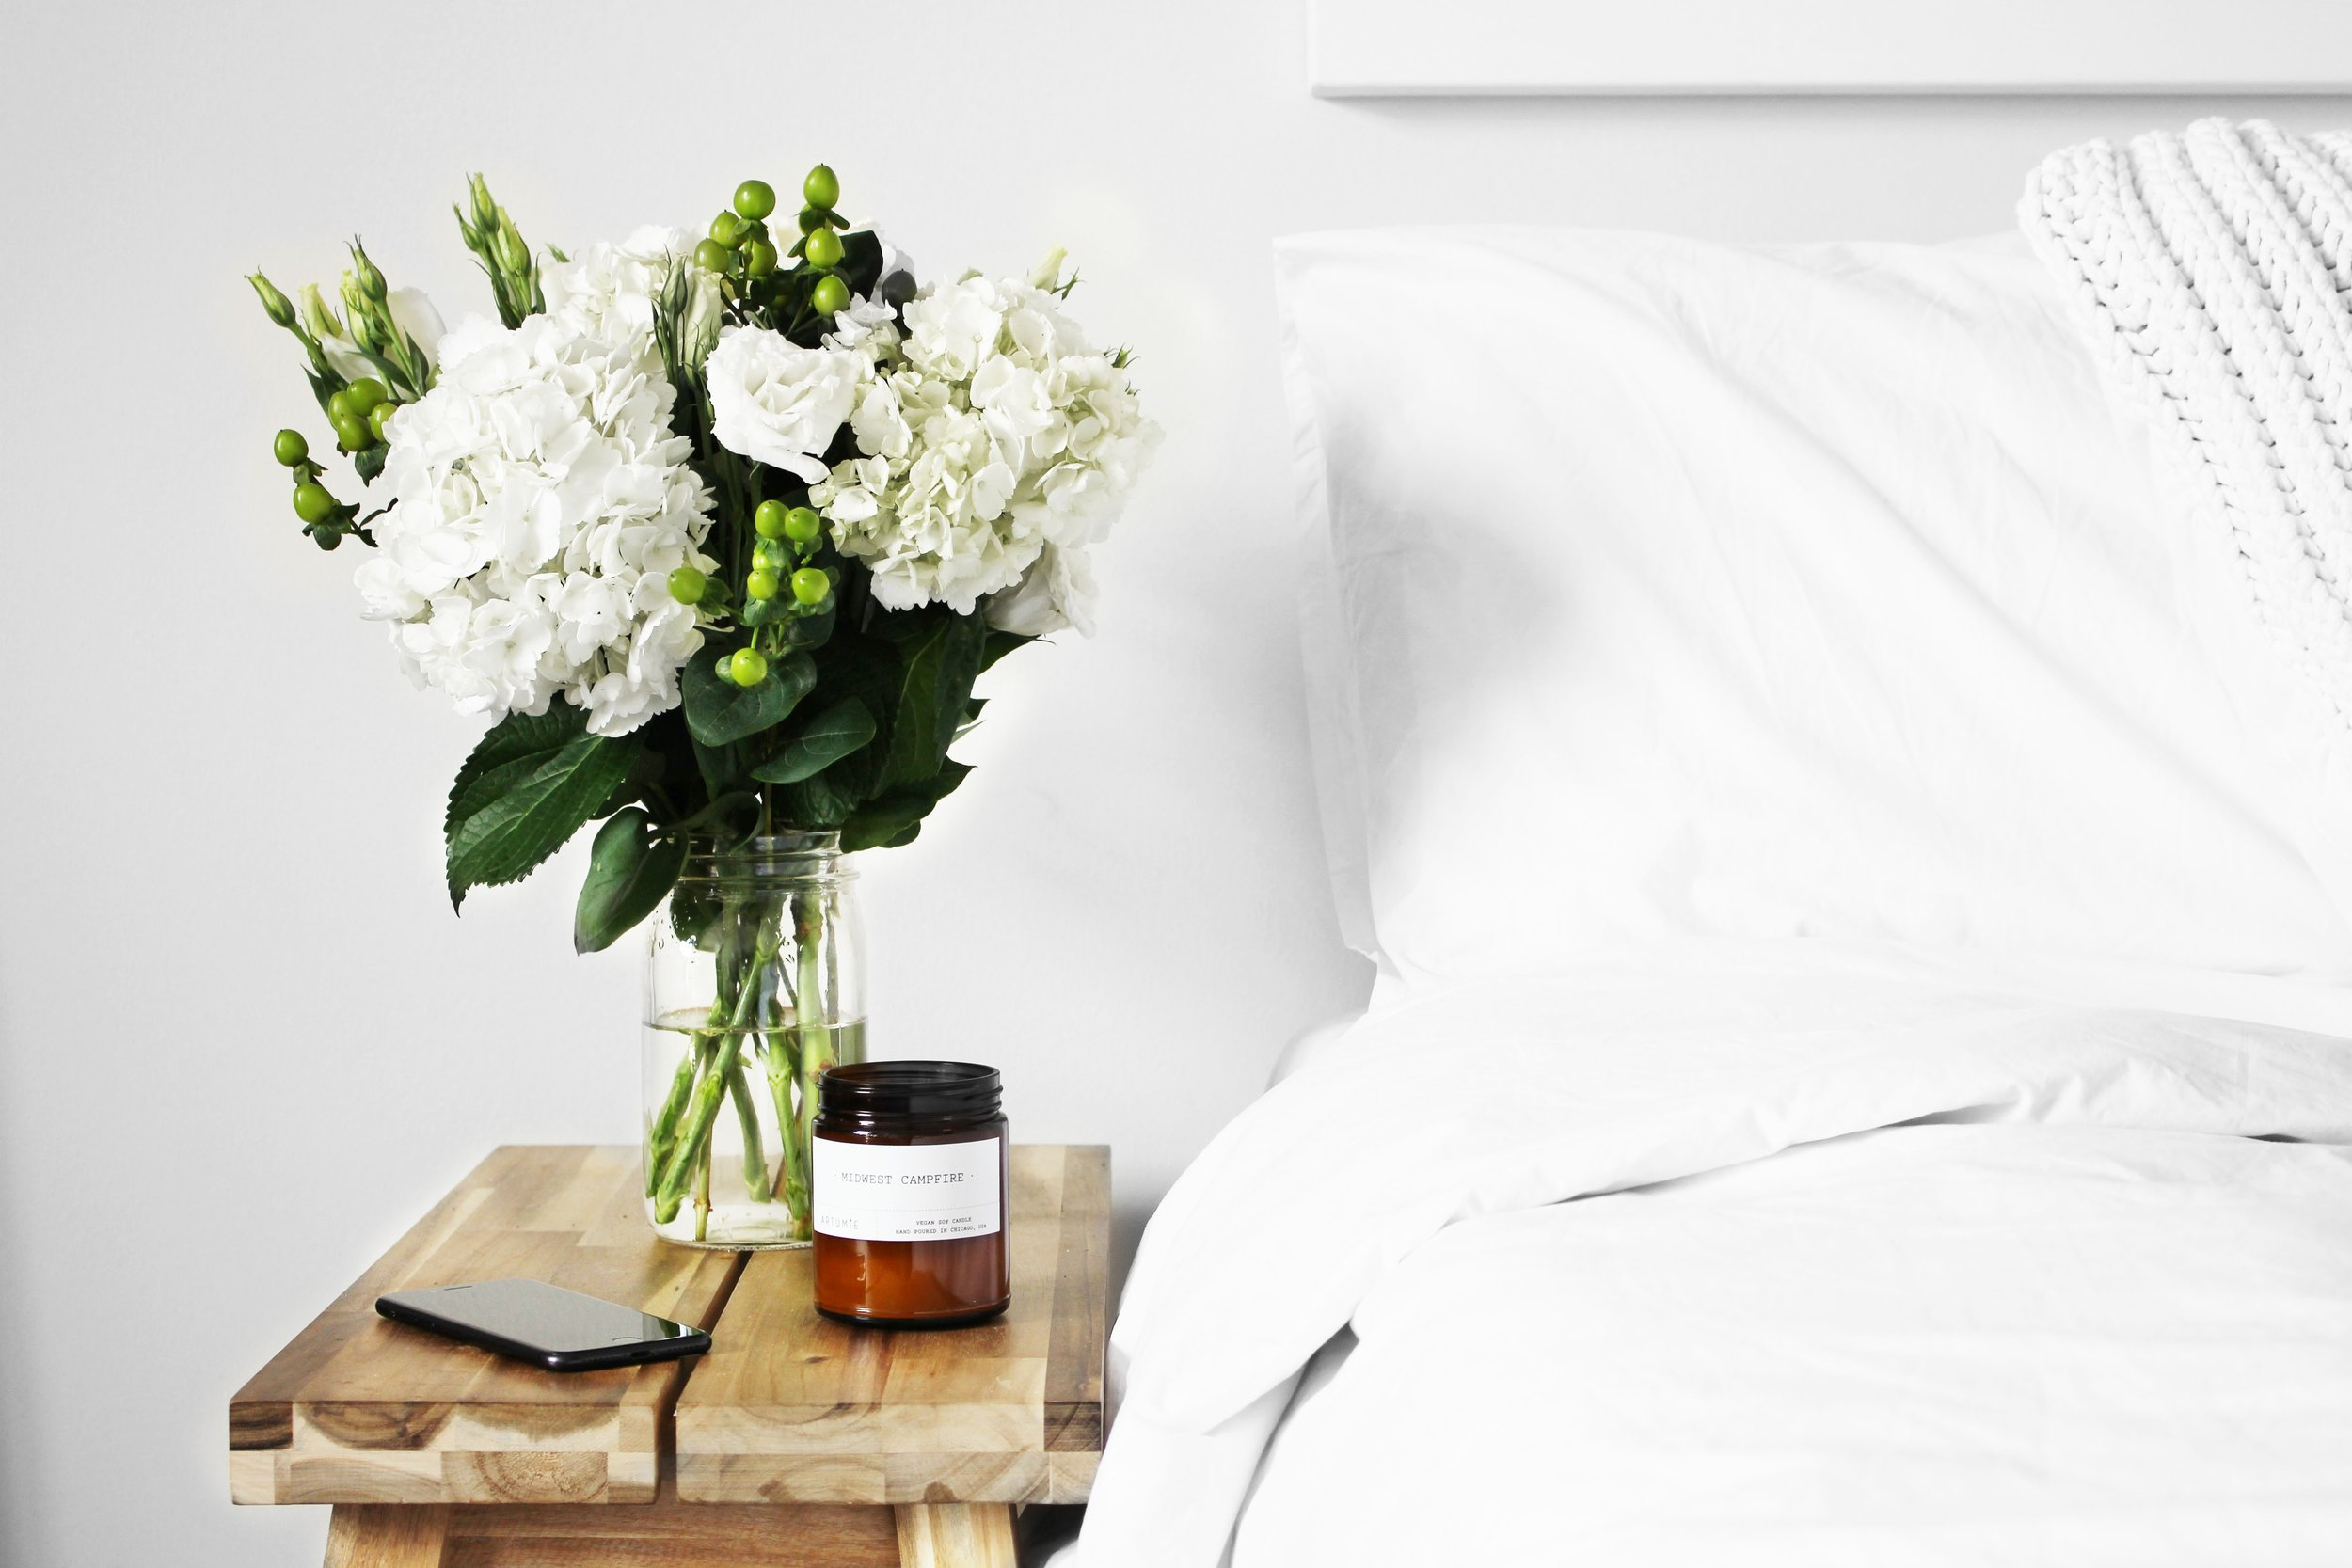 flowers and bed.jpg